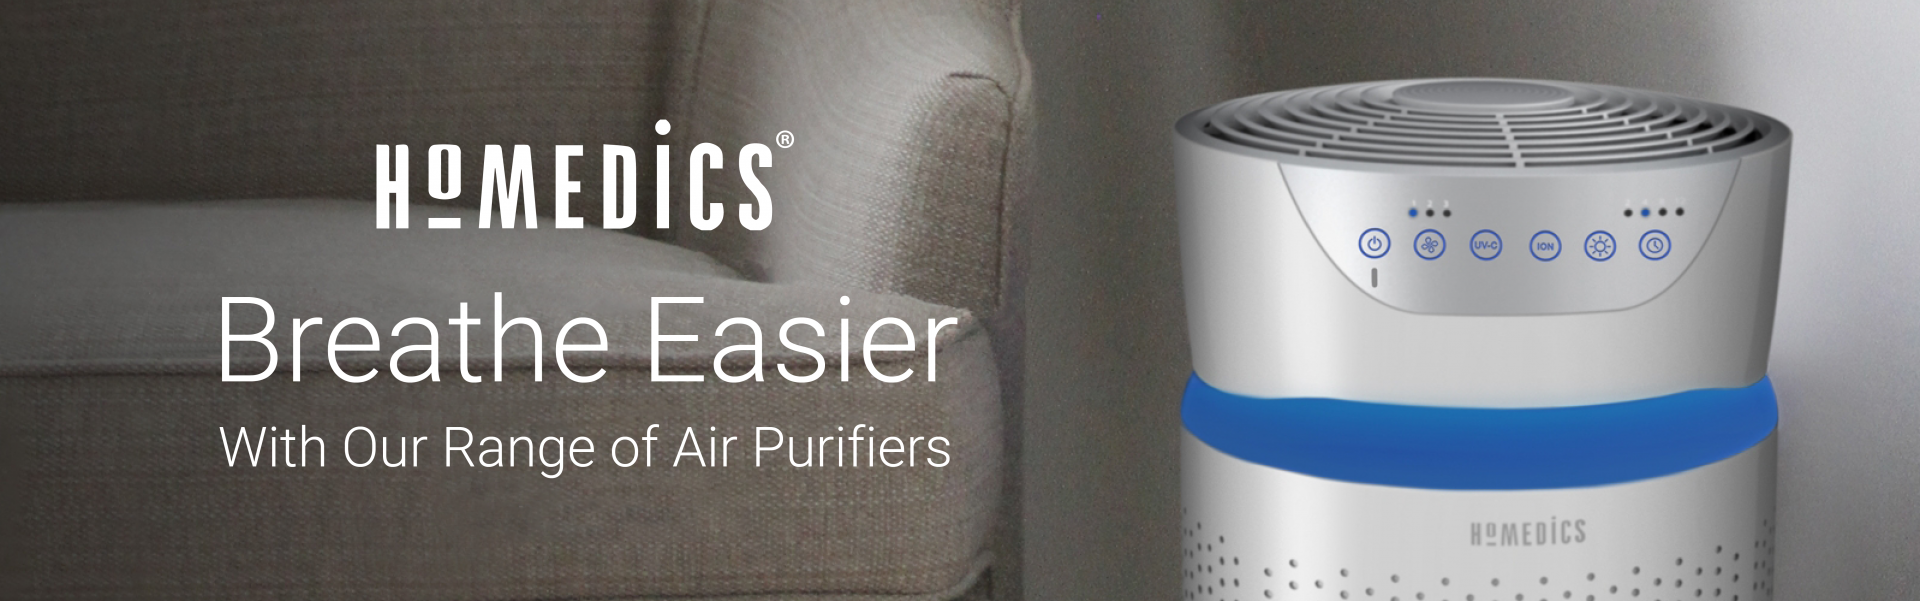 Homedics Air Purifiers